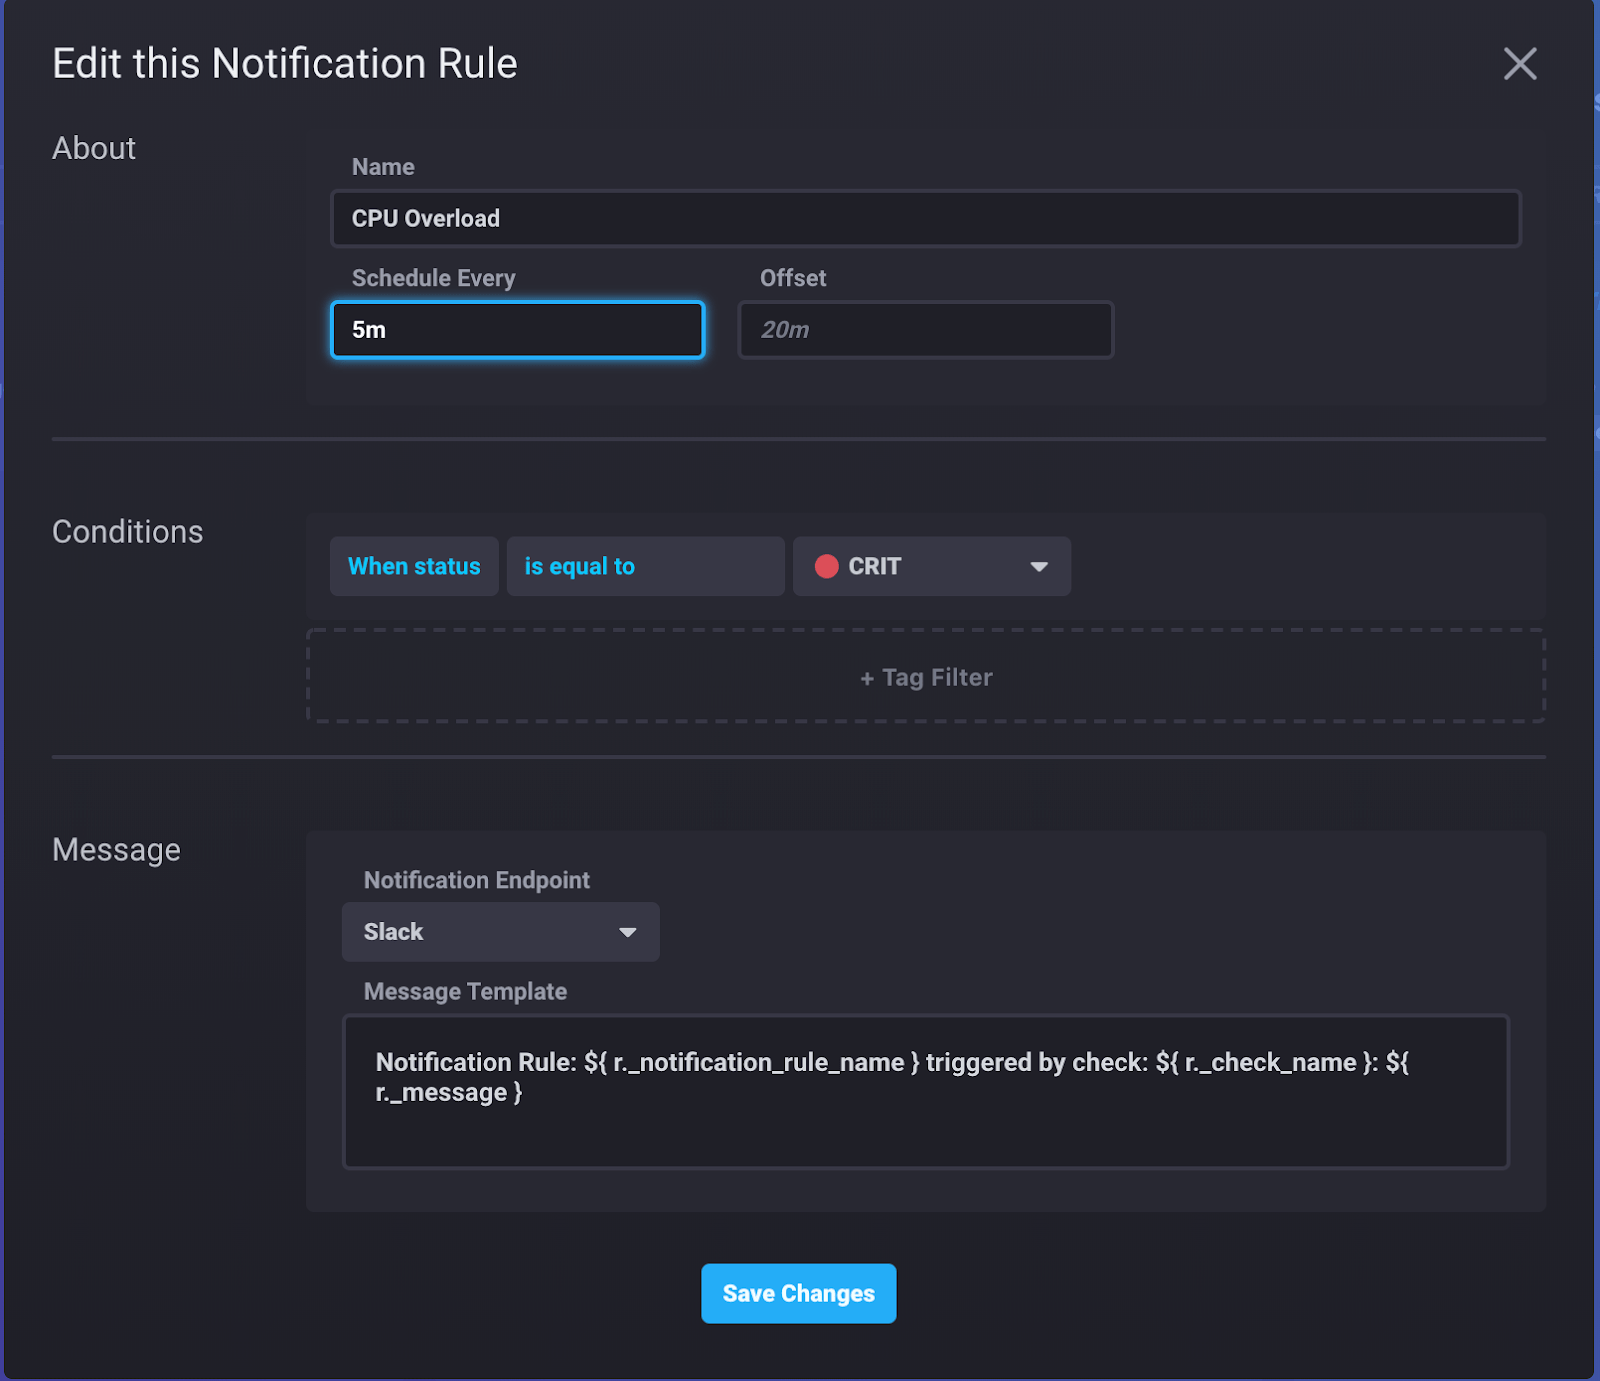 InfluxDB Cloud - edit notification rule